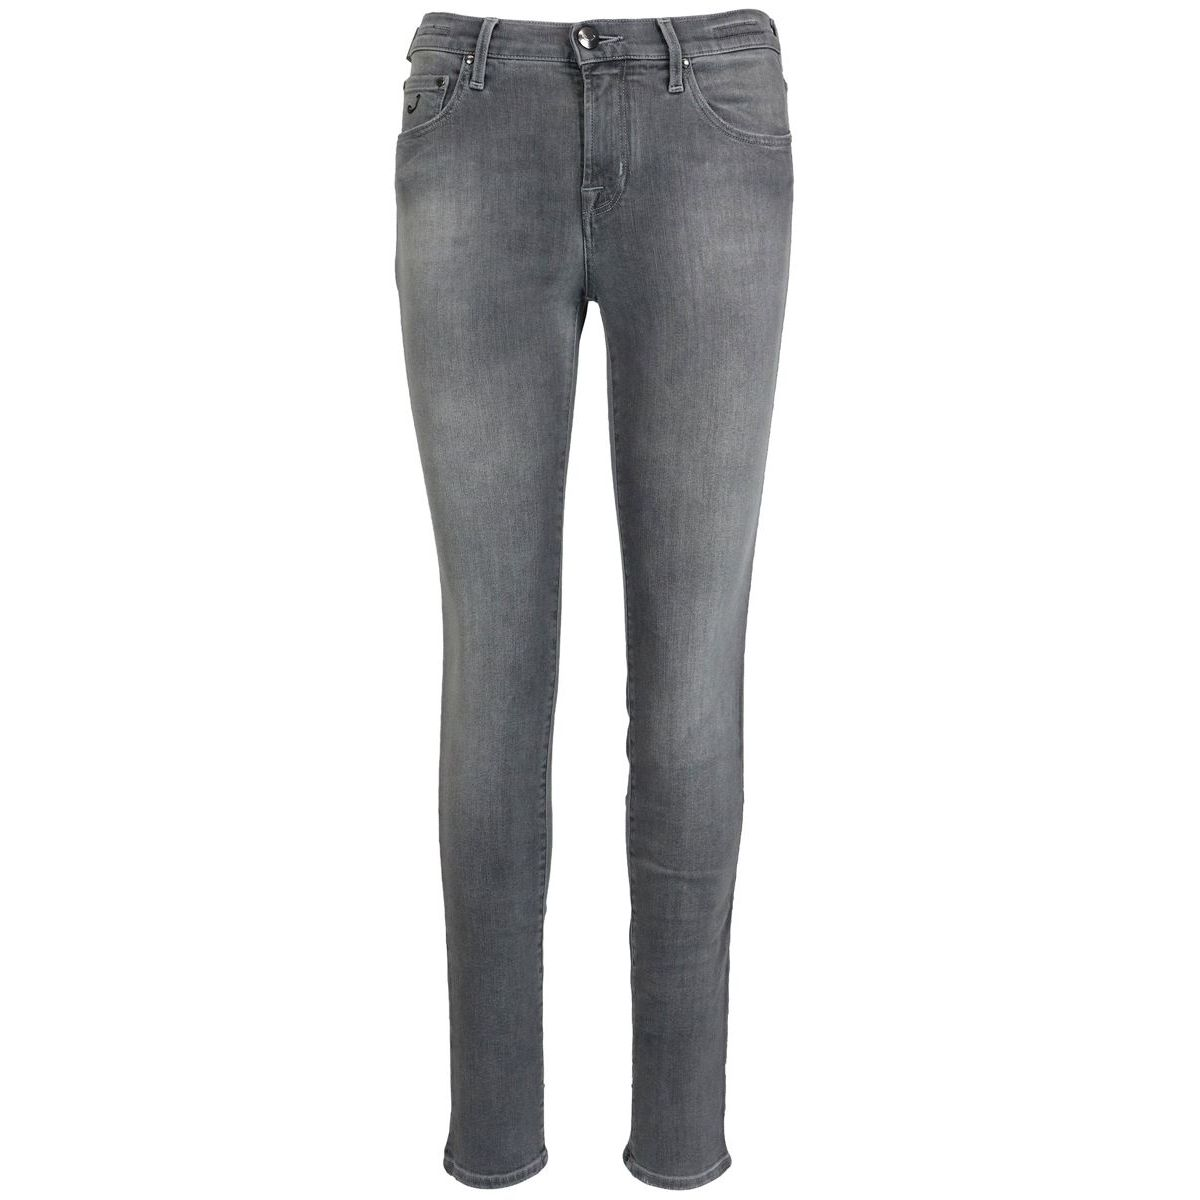 KIMBERLY SLIM jeans with narrow bottom Gray denim Jacob Cohen